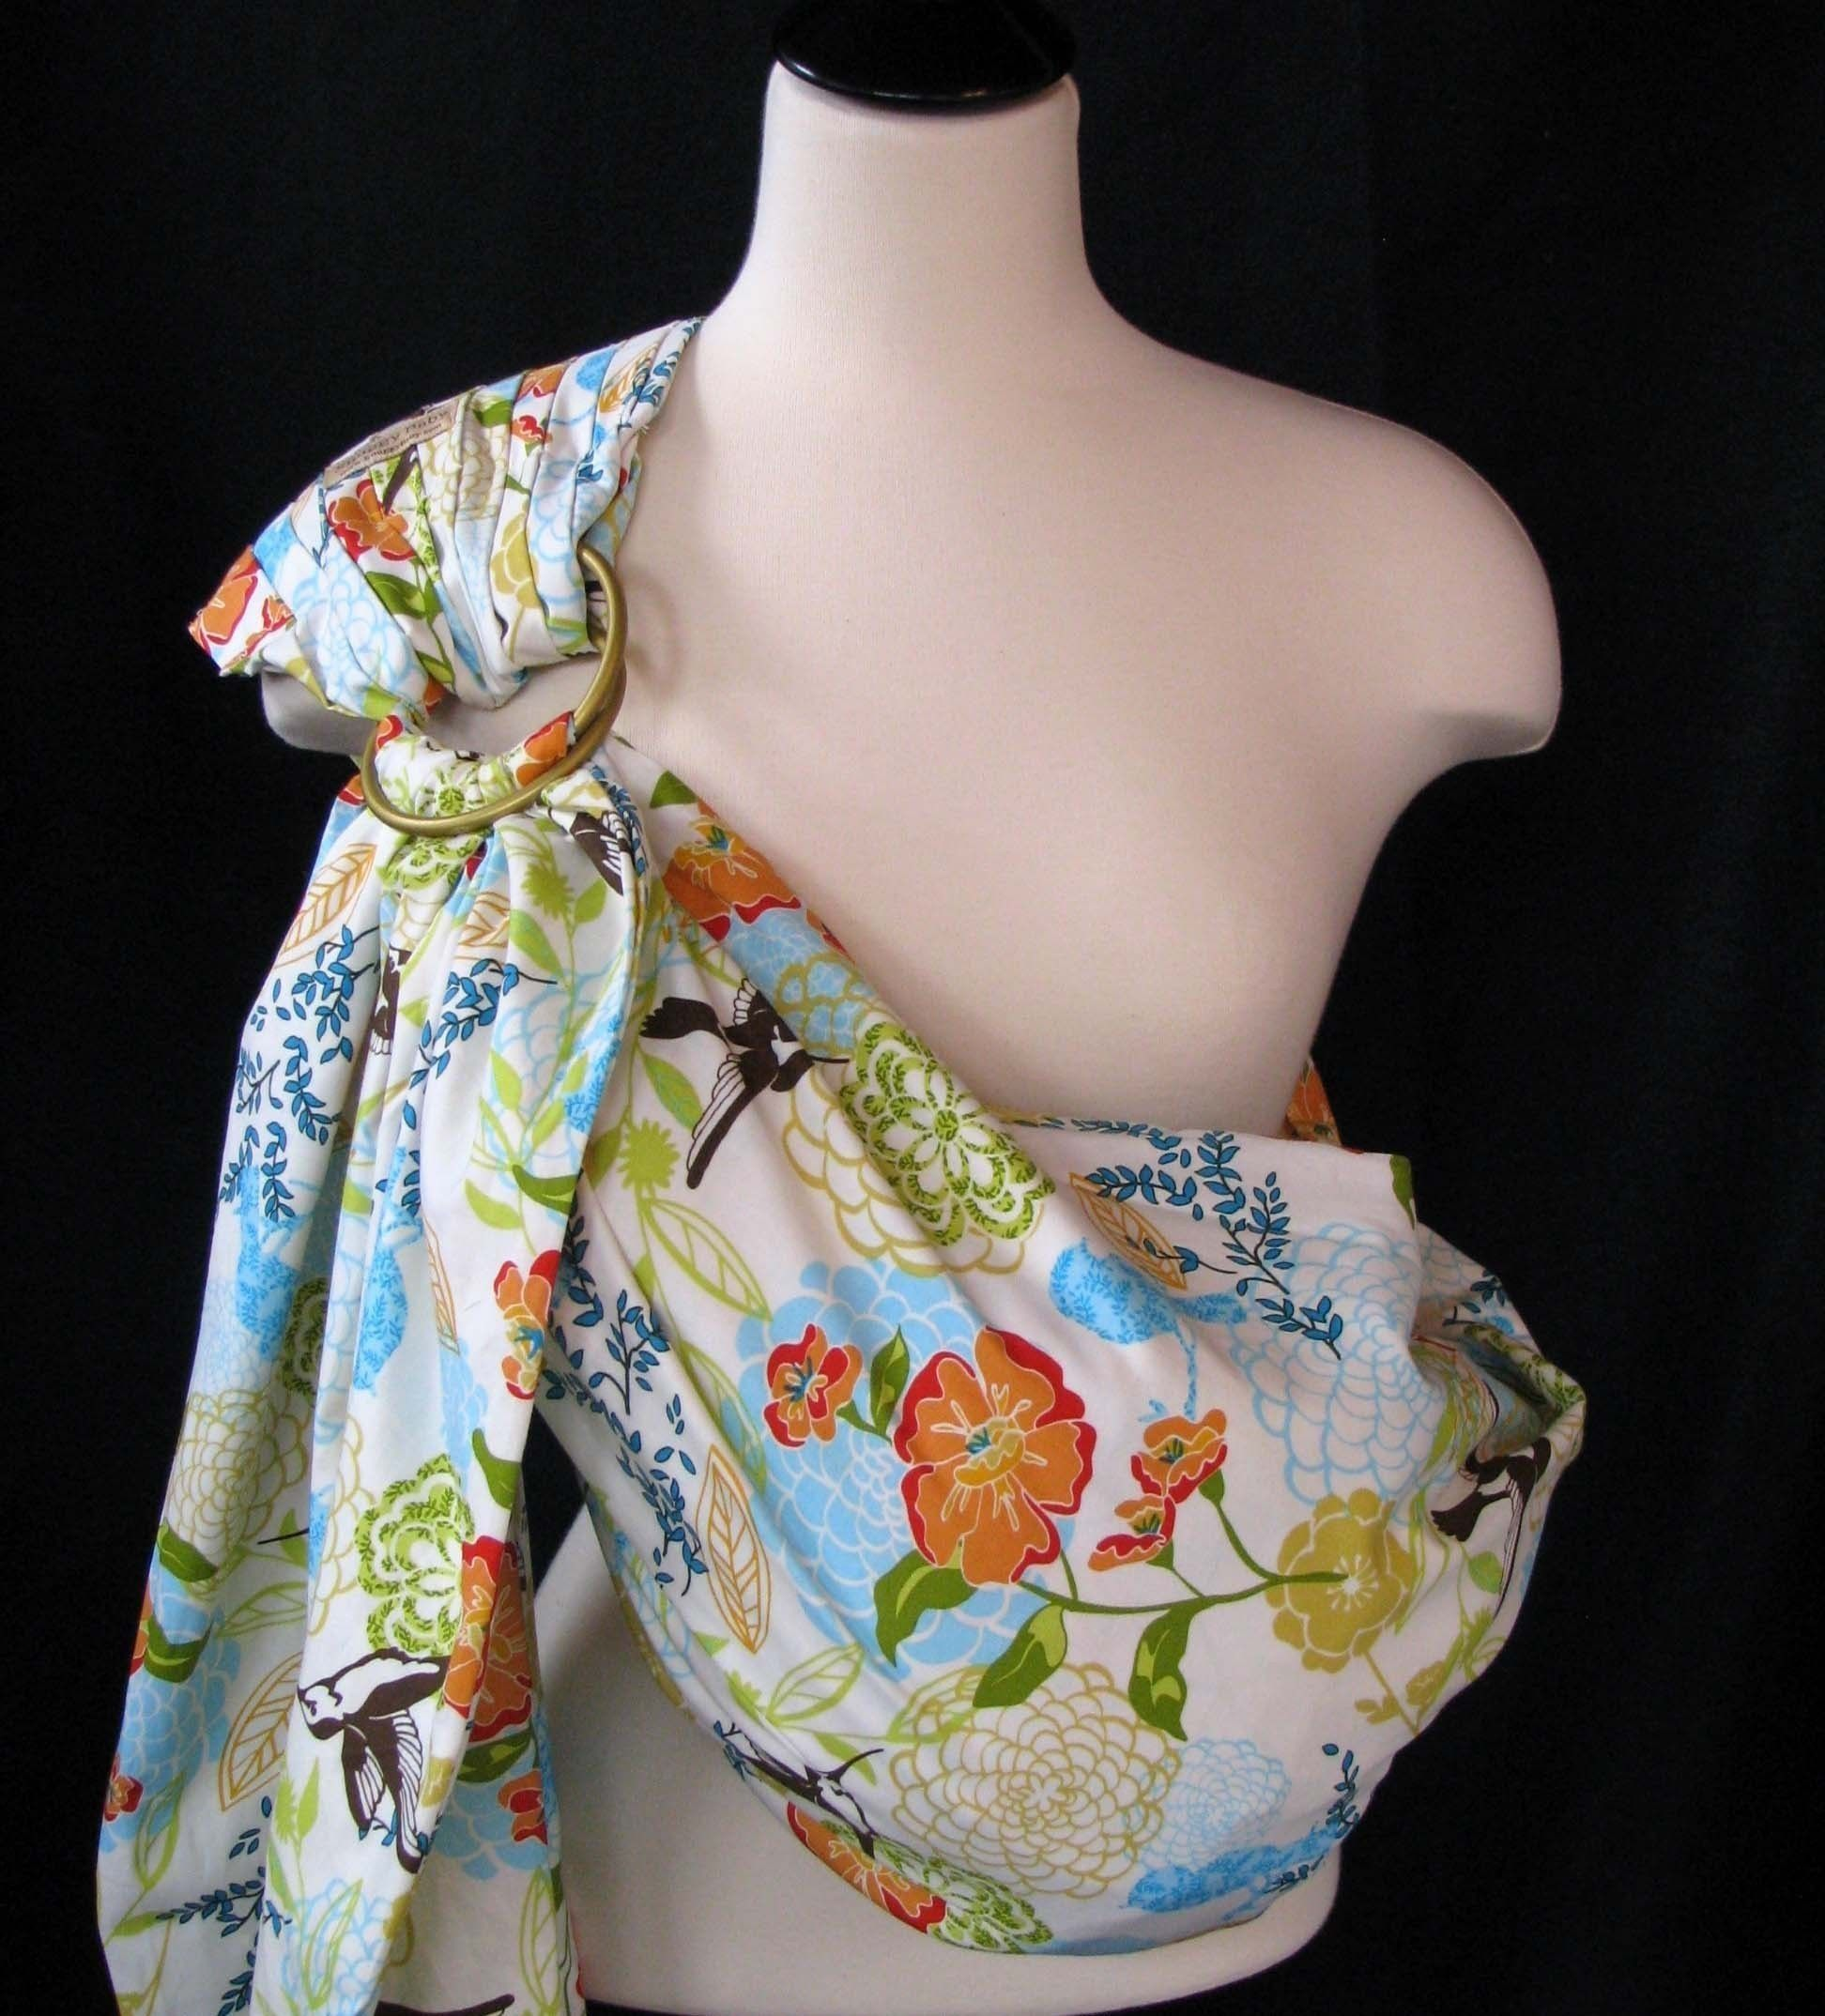 Baby Sling Ring Sling Baby Carrier - Botanical Garden - Instructional DVD Included - FAST SHIPPING. $49.00, via Etsy.